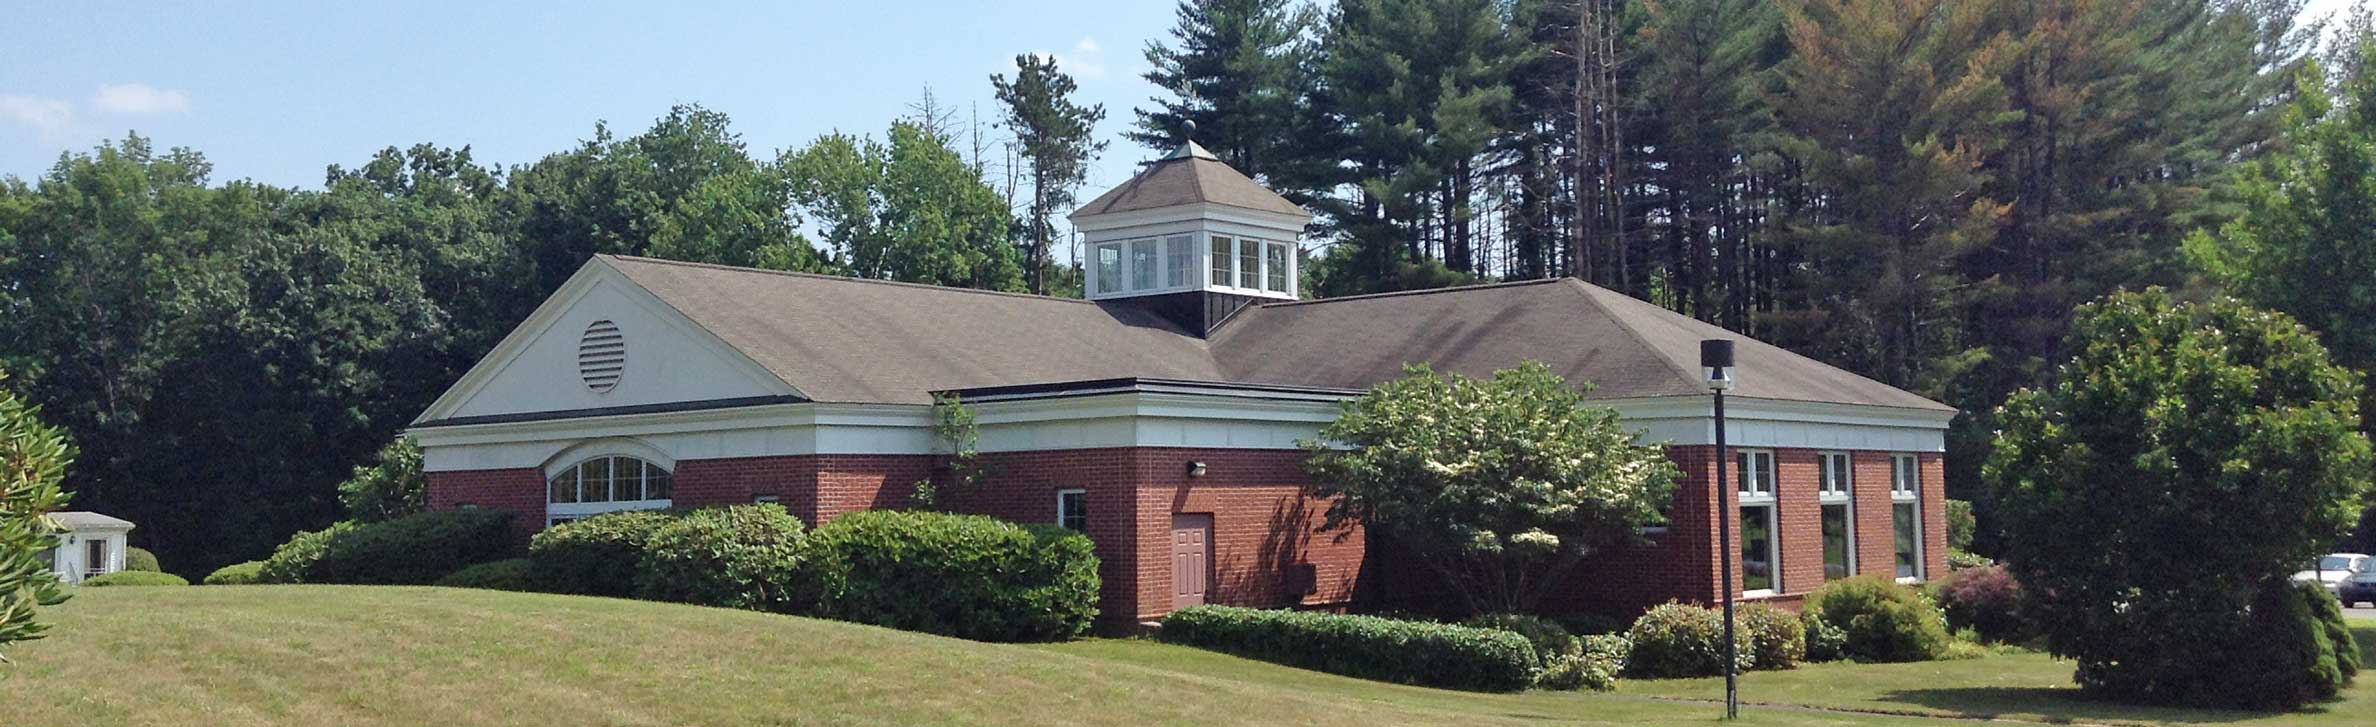 Edwards Public Library in Southampton, MA